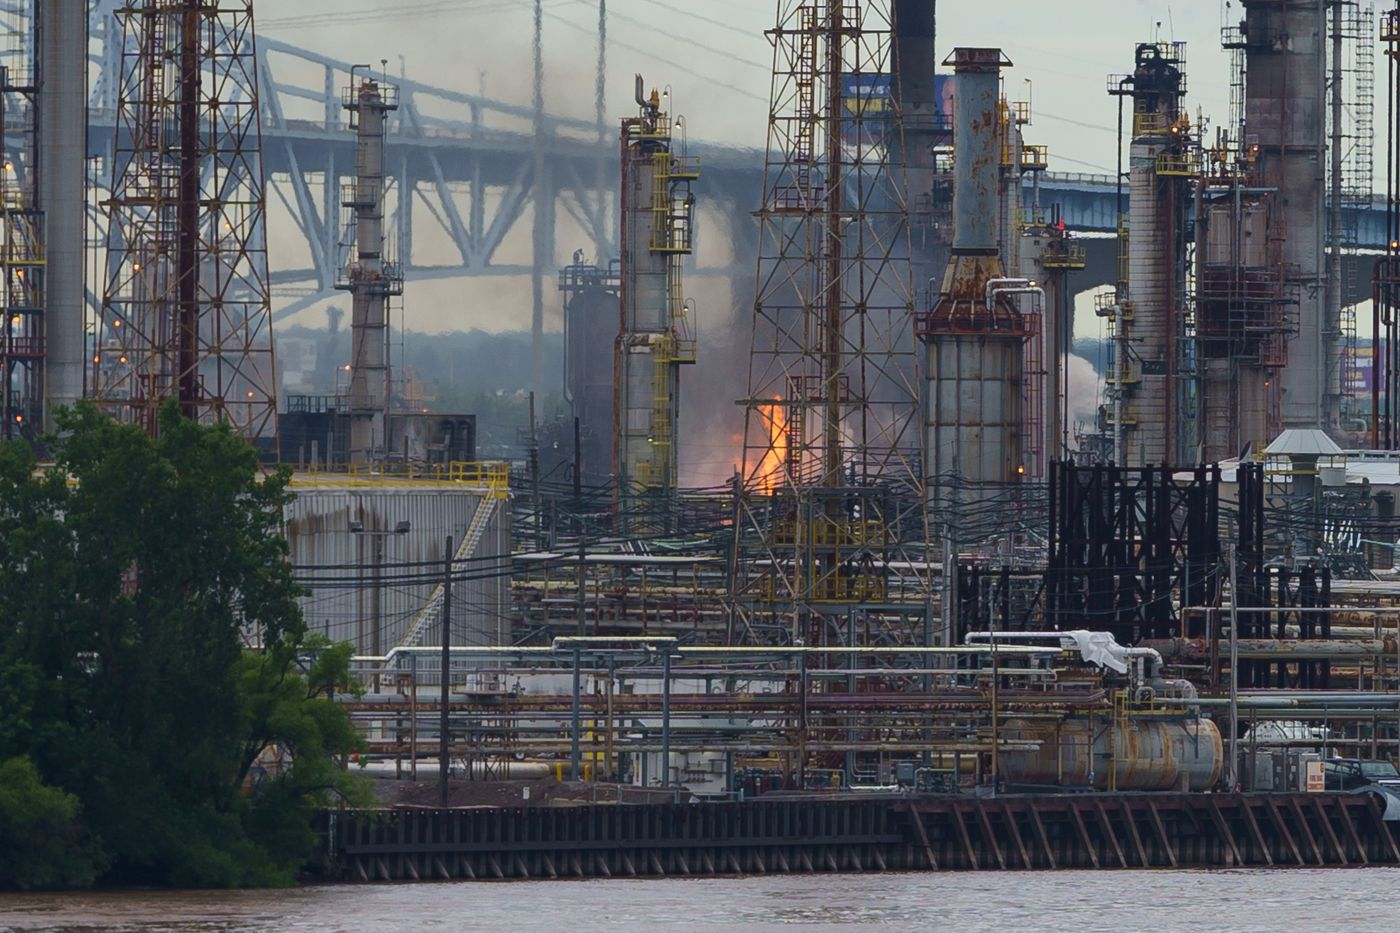 It looked like Armageddon': Refinery fire puts focus on